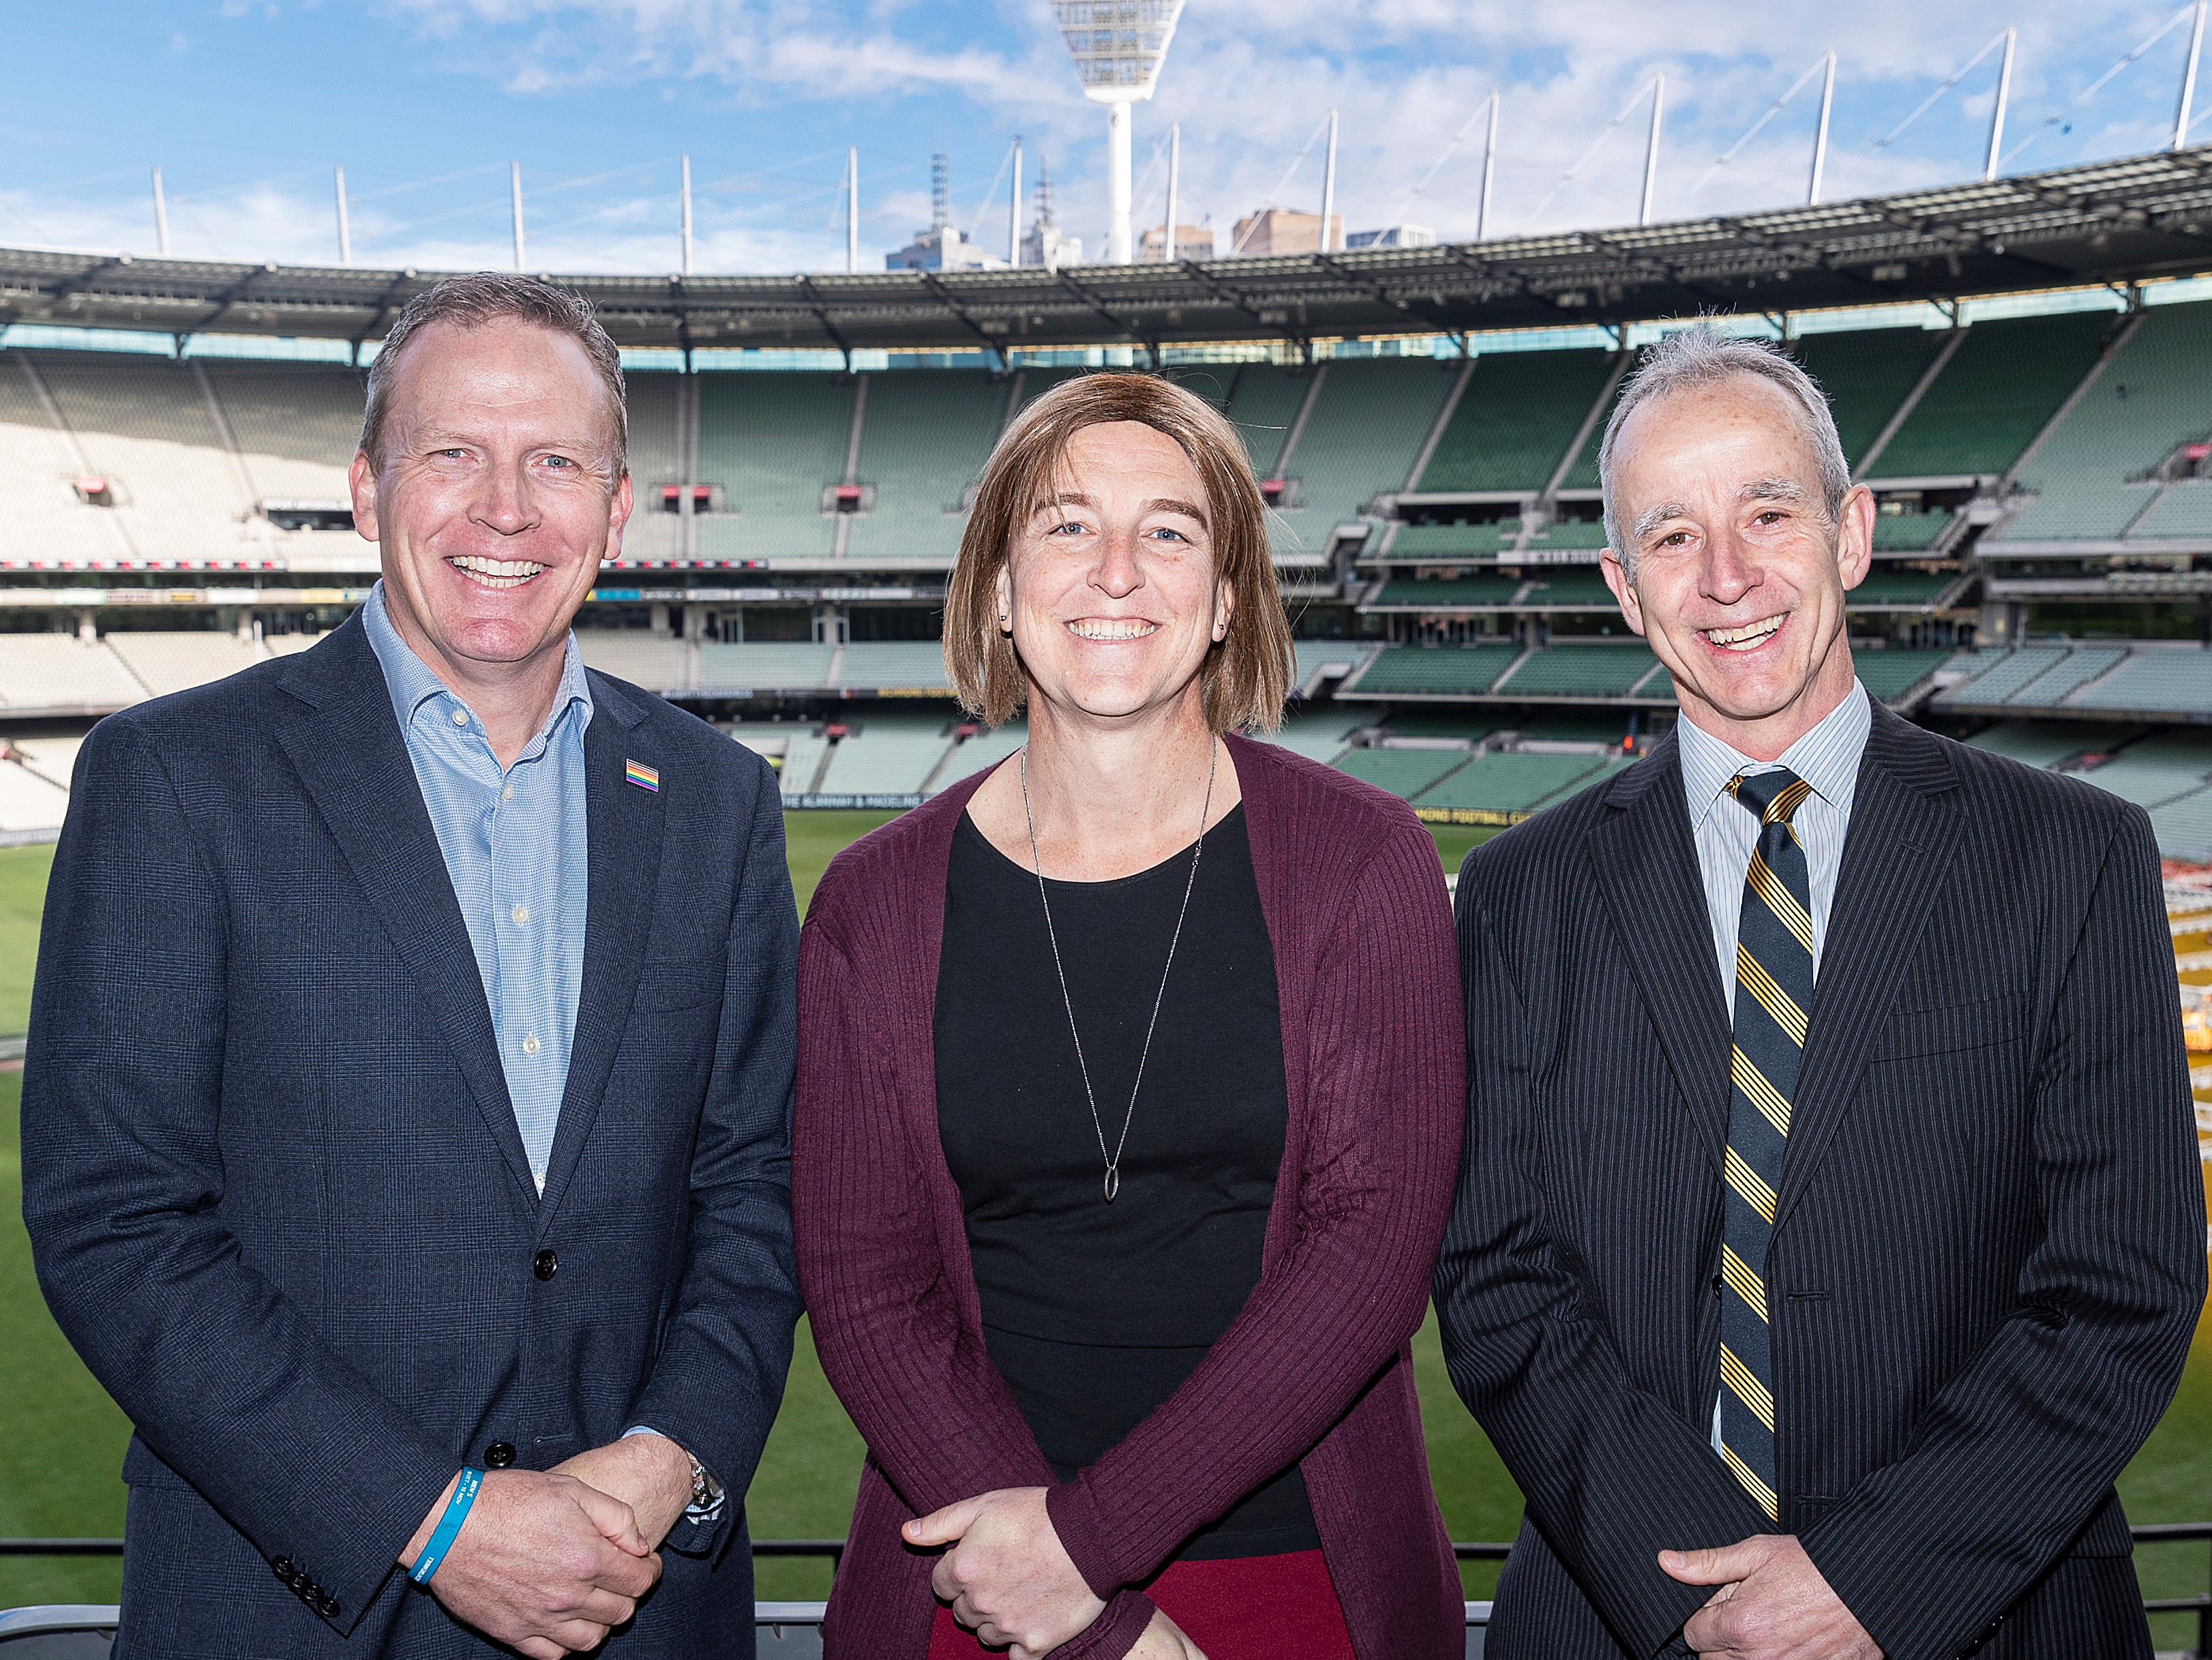 Cricket Australia announces gender diversity policy and guidelines